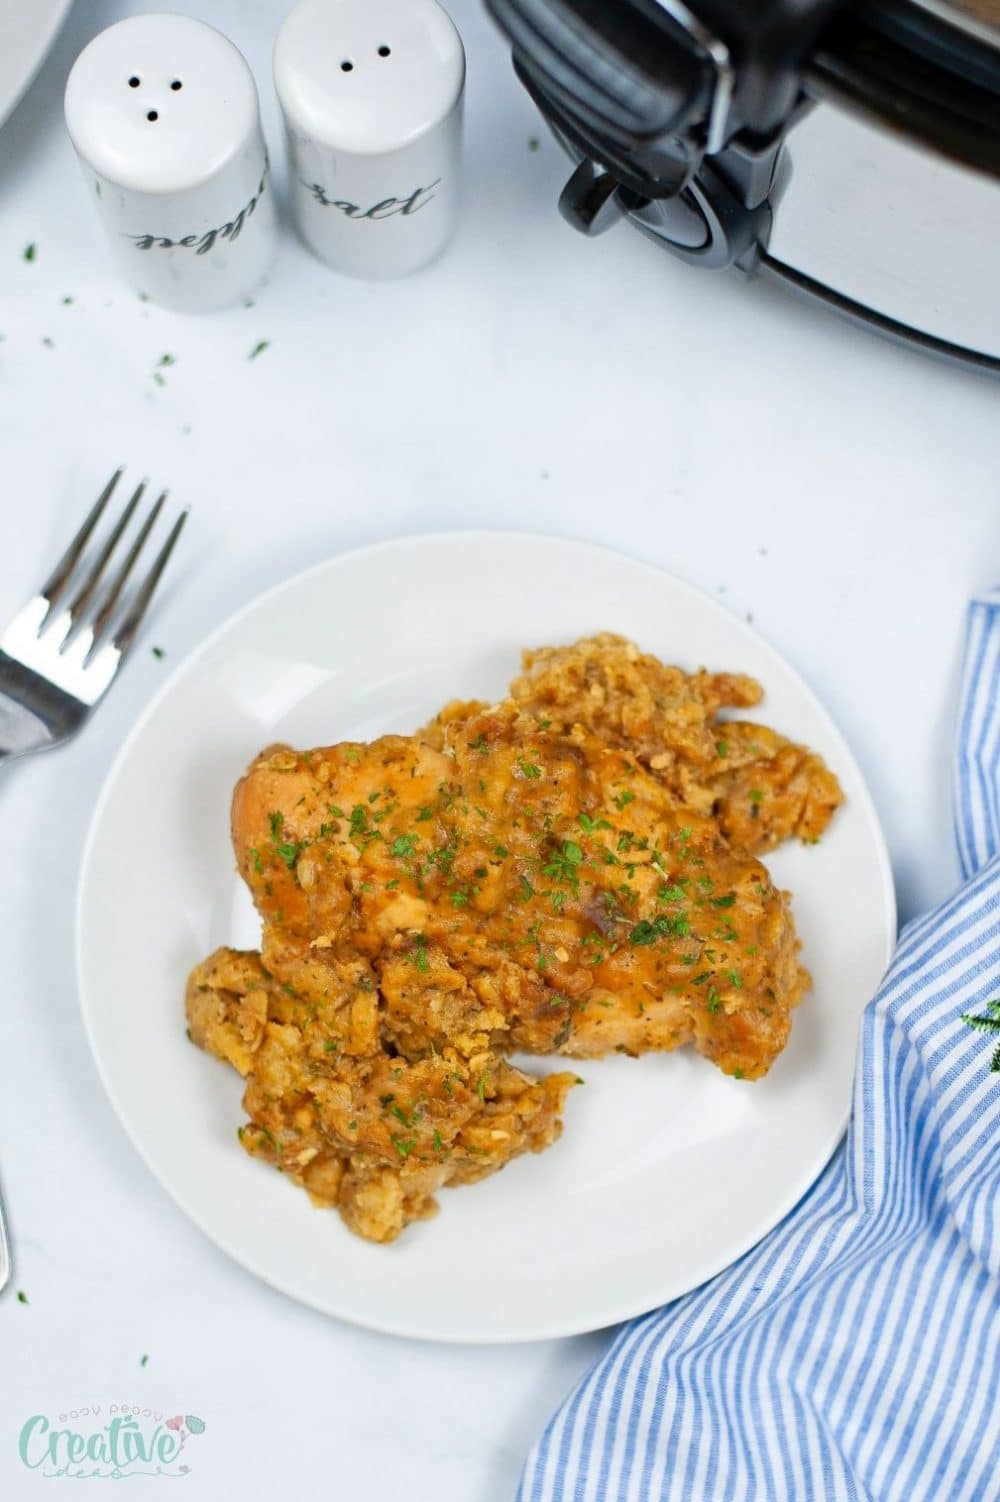 Image of chicken stuffing casserole on a white plate next to the slow cooker where it was cooked